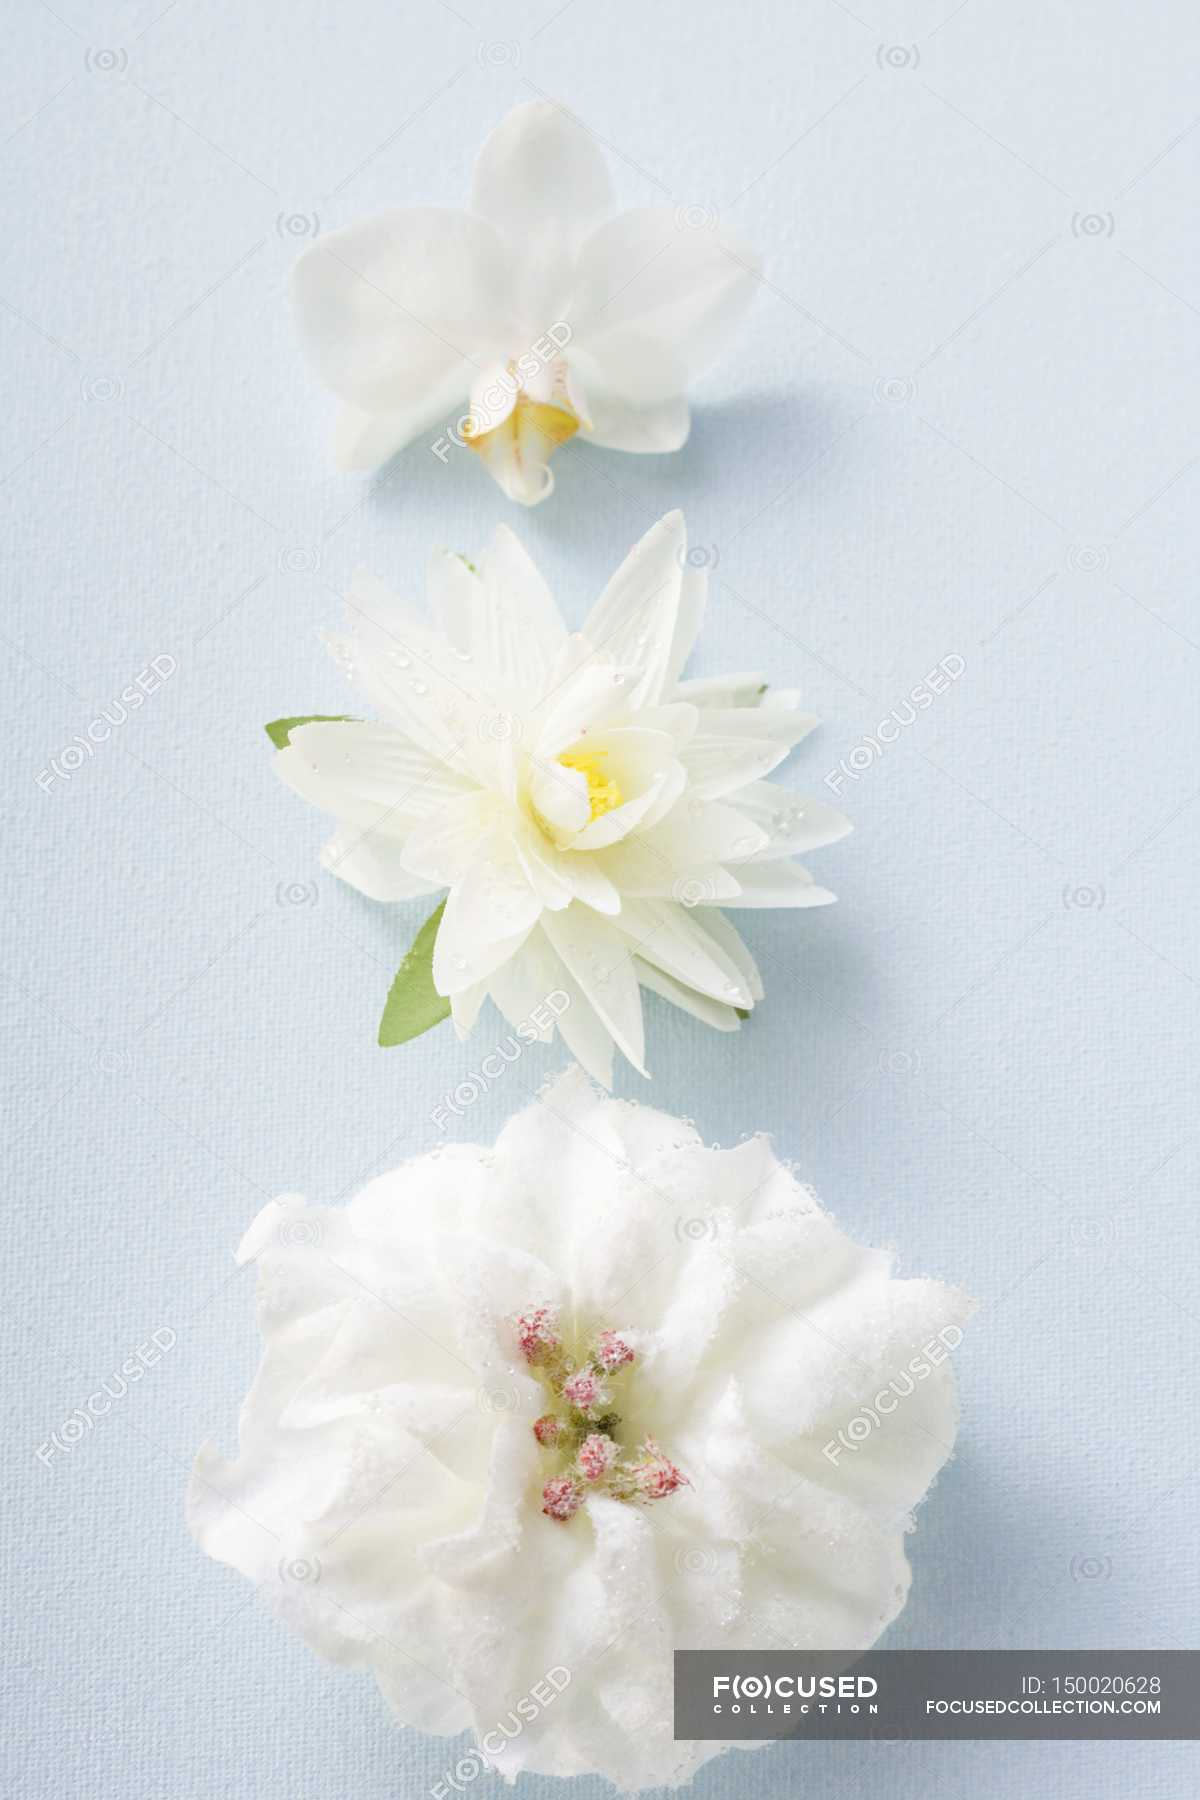 Closeup View Of Three Different White Flowers On Blue Surface